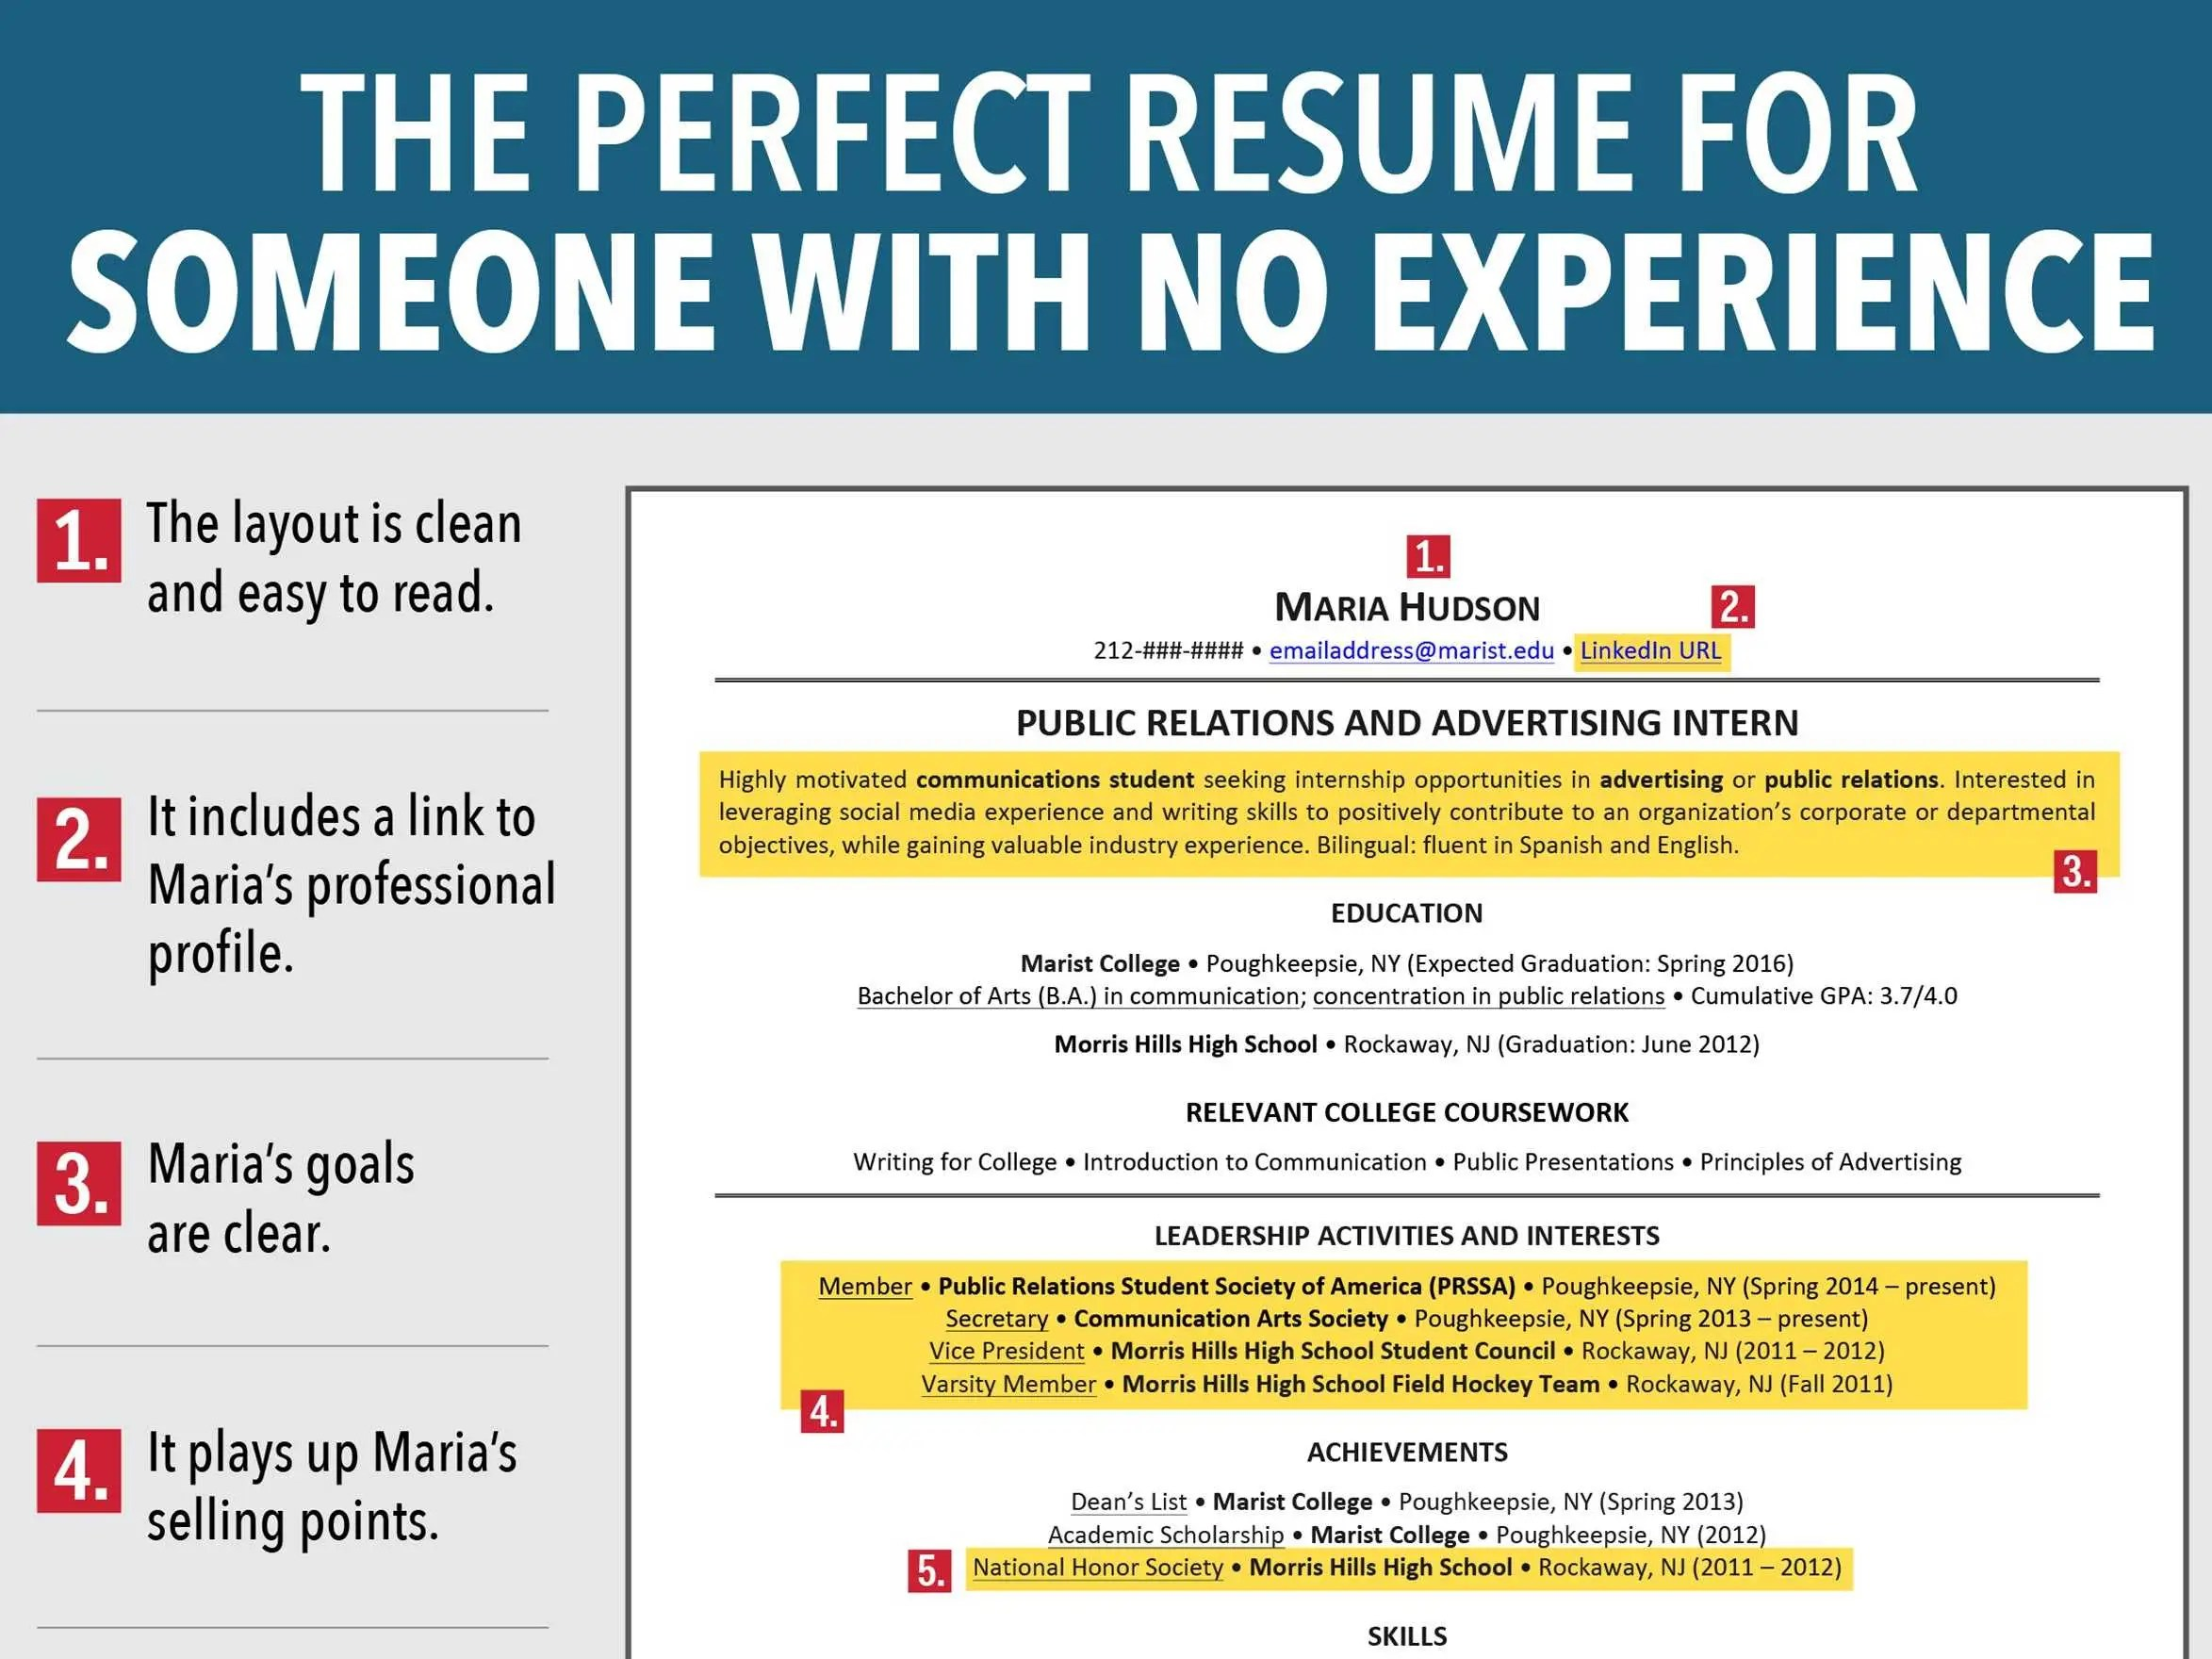 How To Make A Resume Without Work Experience 7 Reasons This Is An Excellent Resume For Someone With No